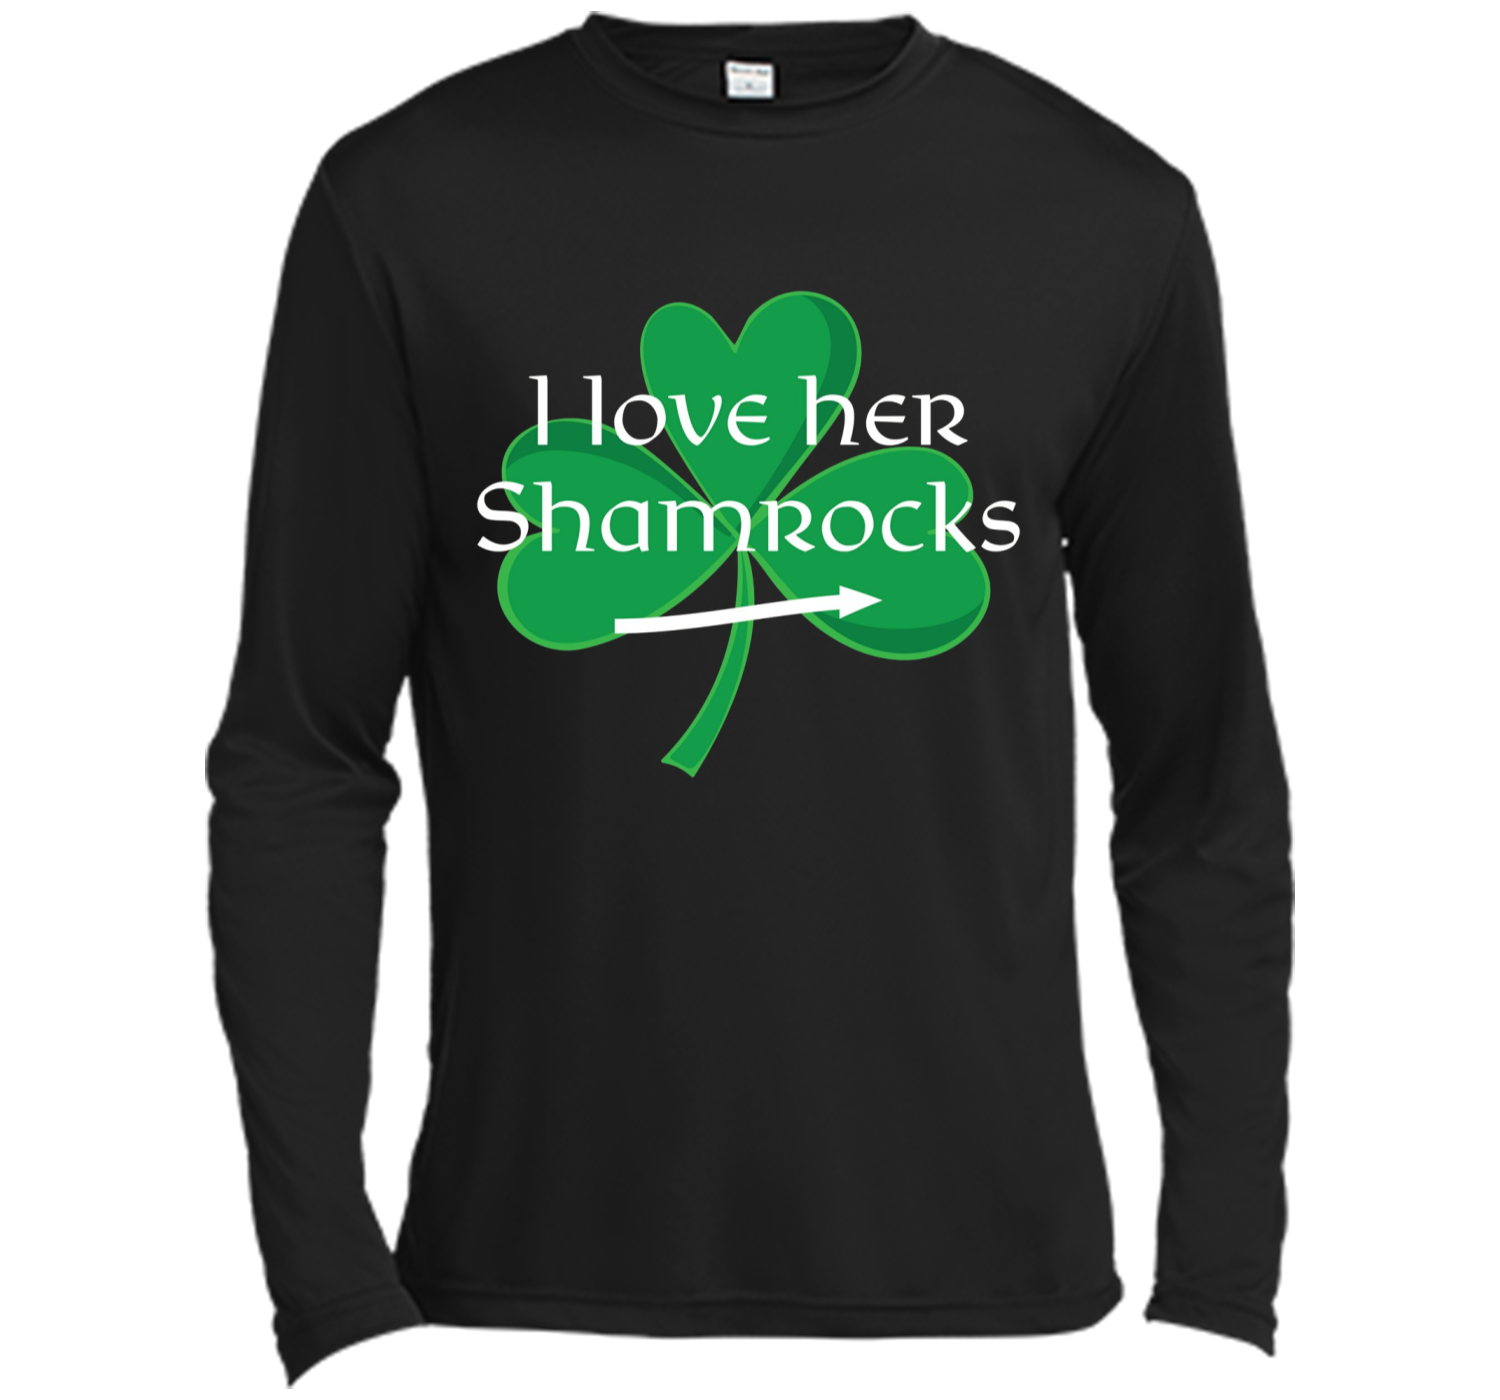 98422955 Funny Couples St. Patty's Day T-Shirt I Love Her Shamrocks Long ...